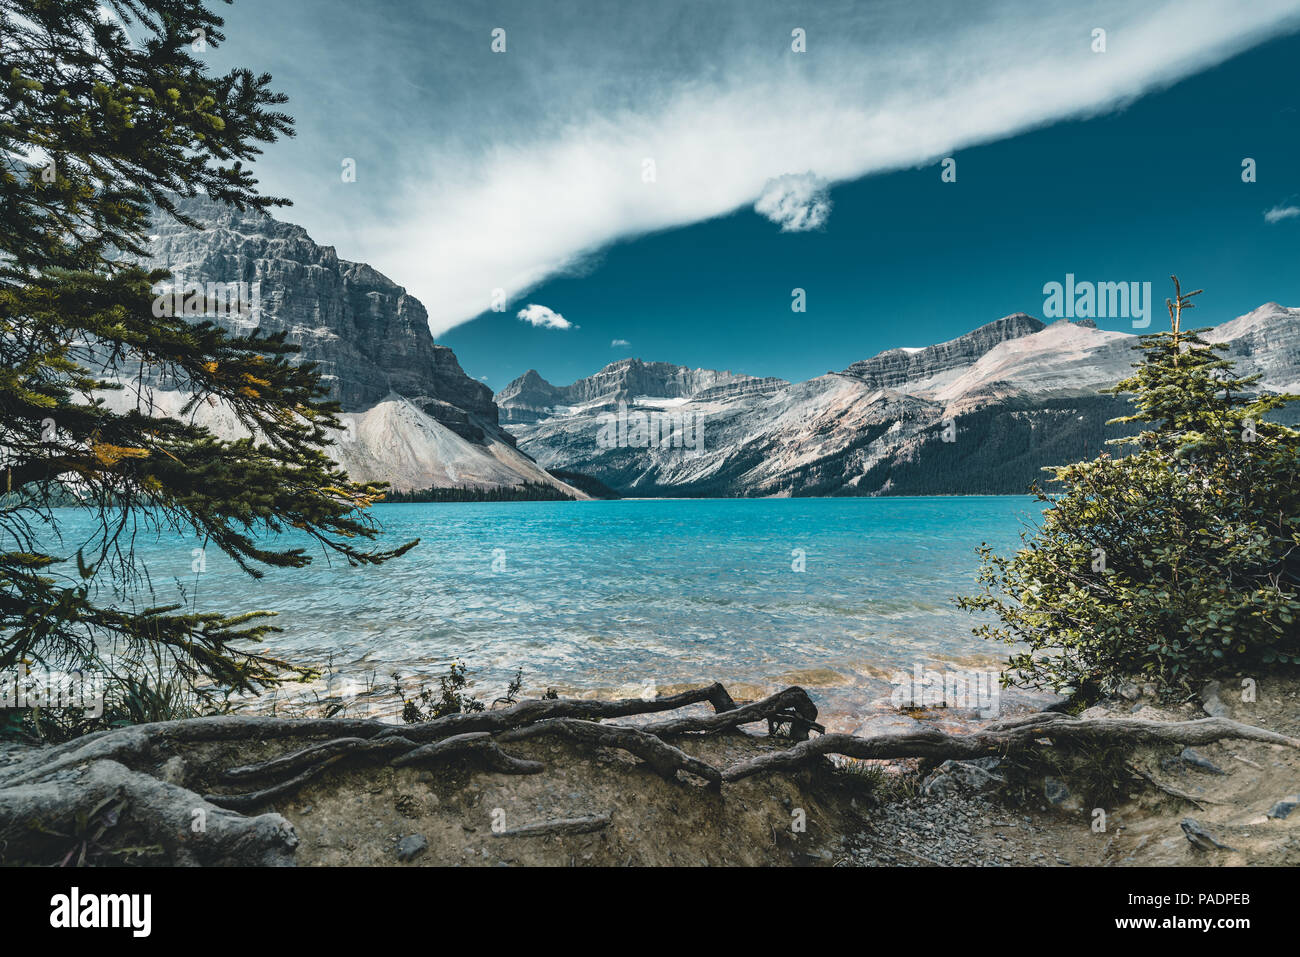 Vue sur le lac Bow, parc national Banff Canada Photo Stock